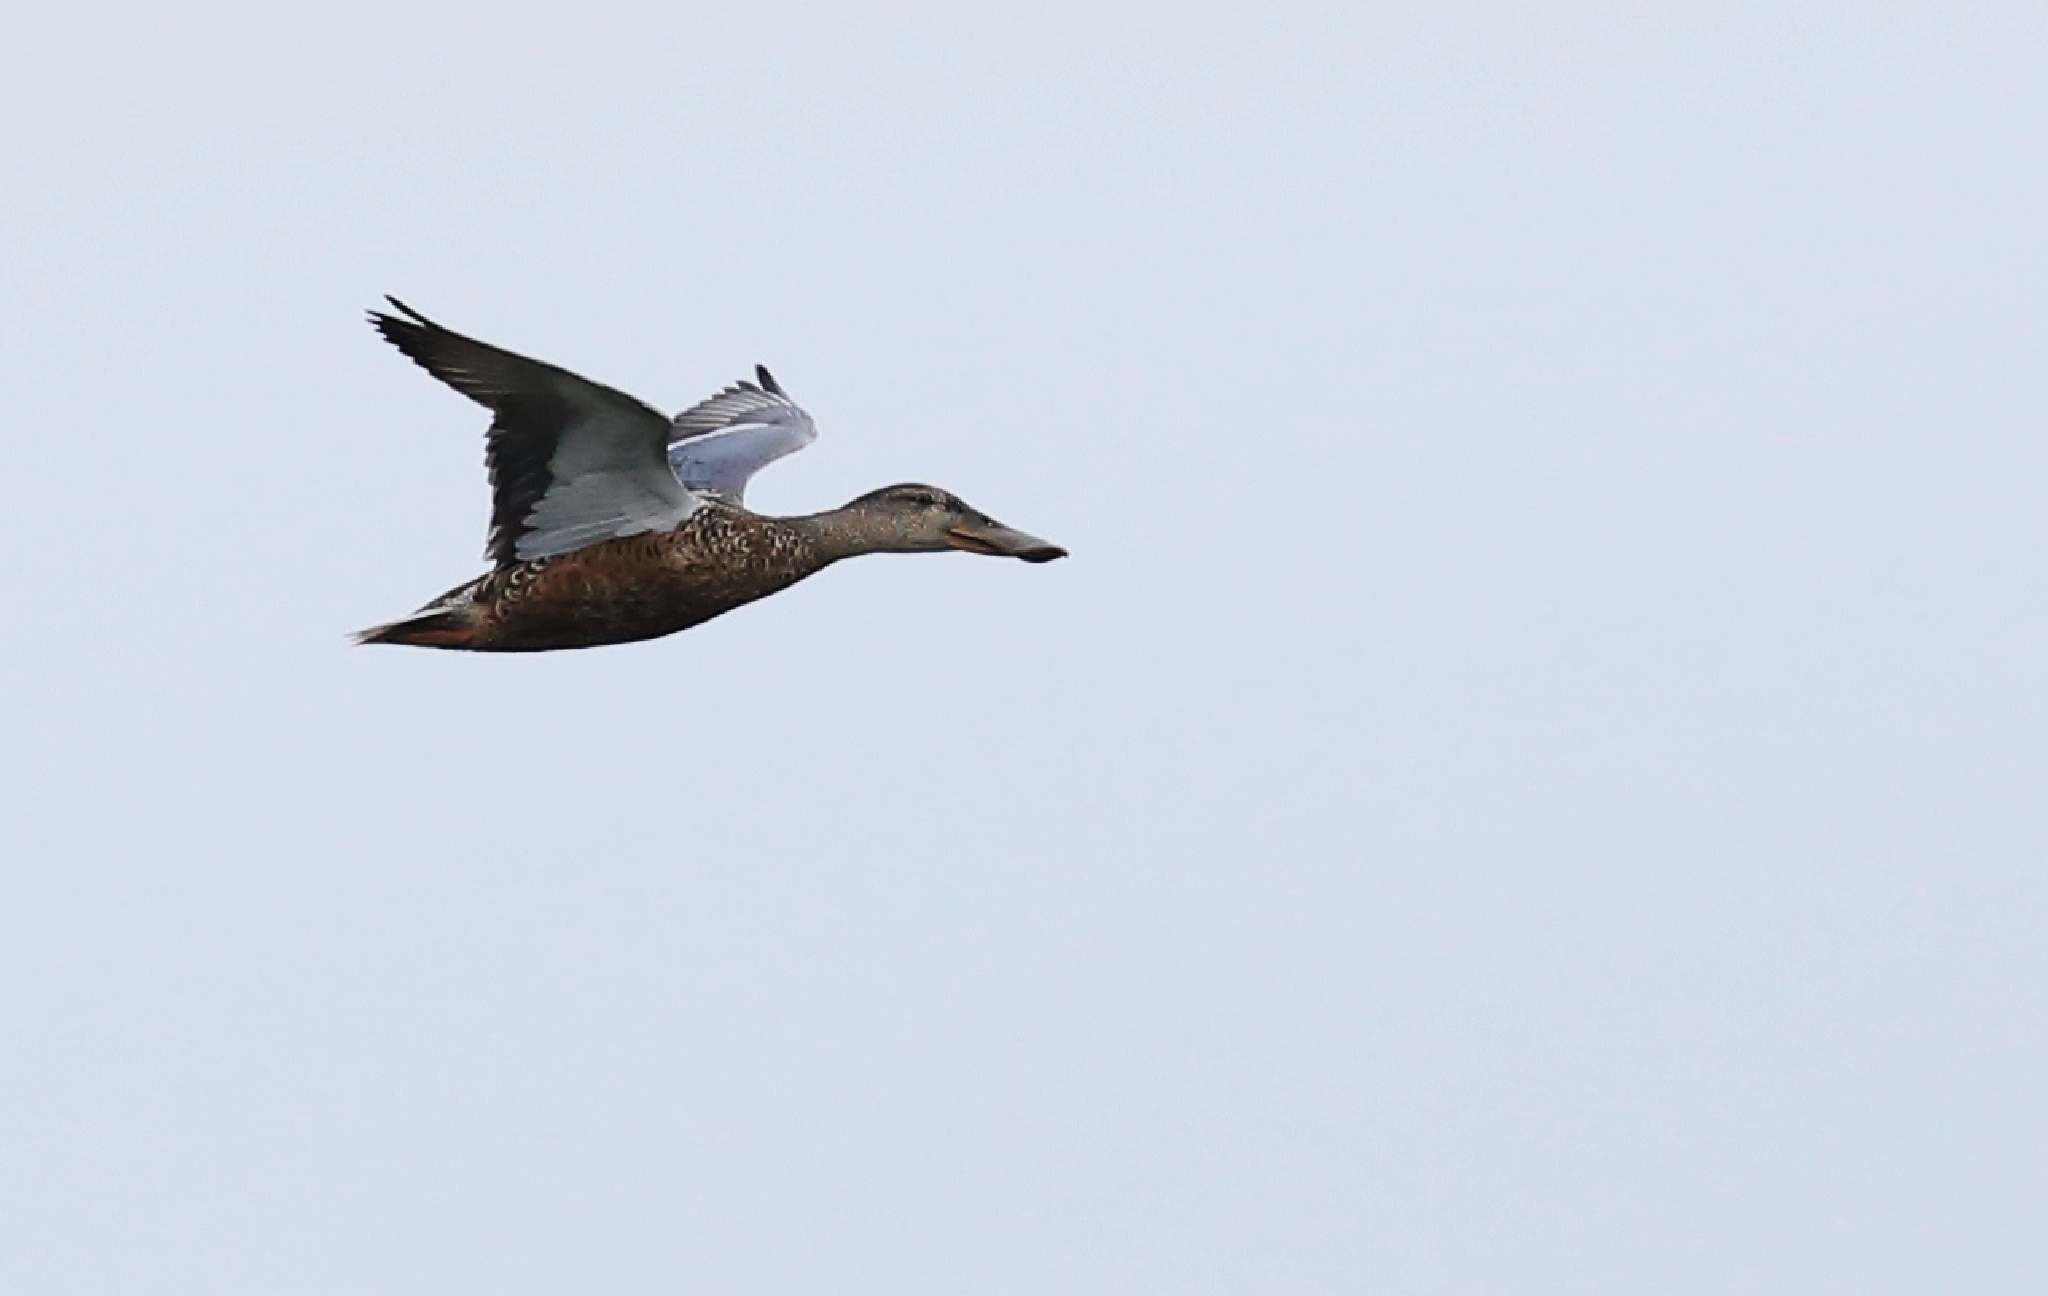 The flying duck. It comes from a few thousand kilometers, from Siberia to Hong Kong. by samip75